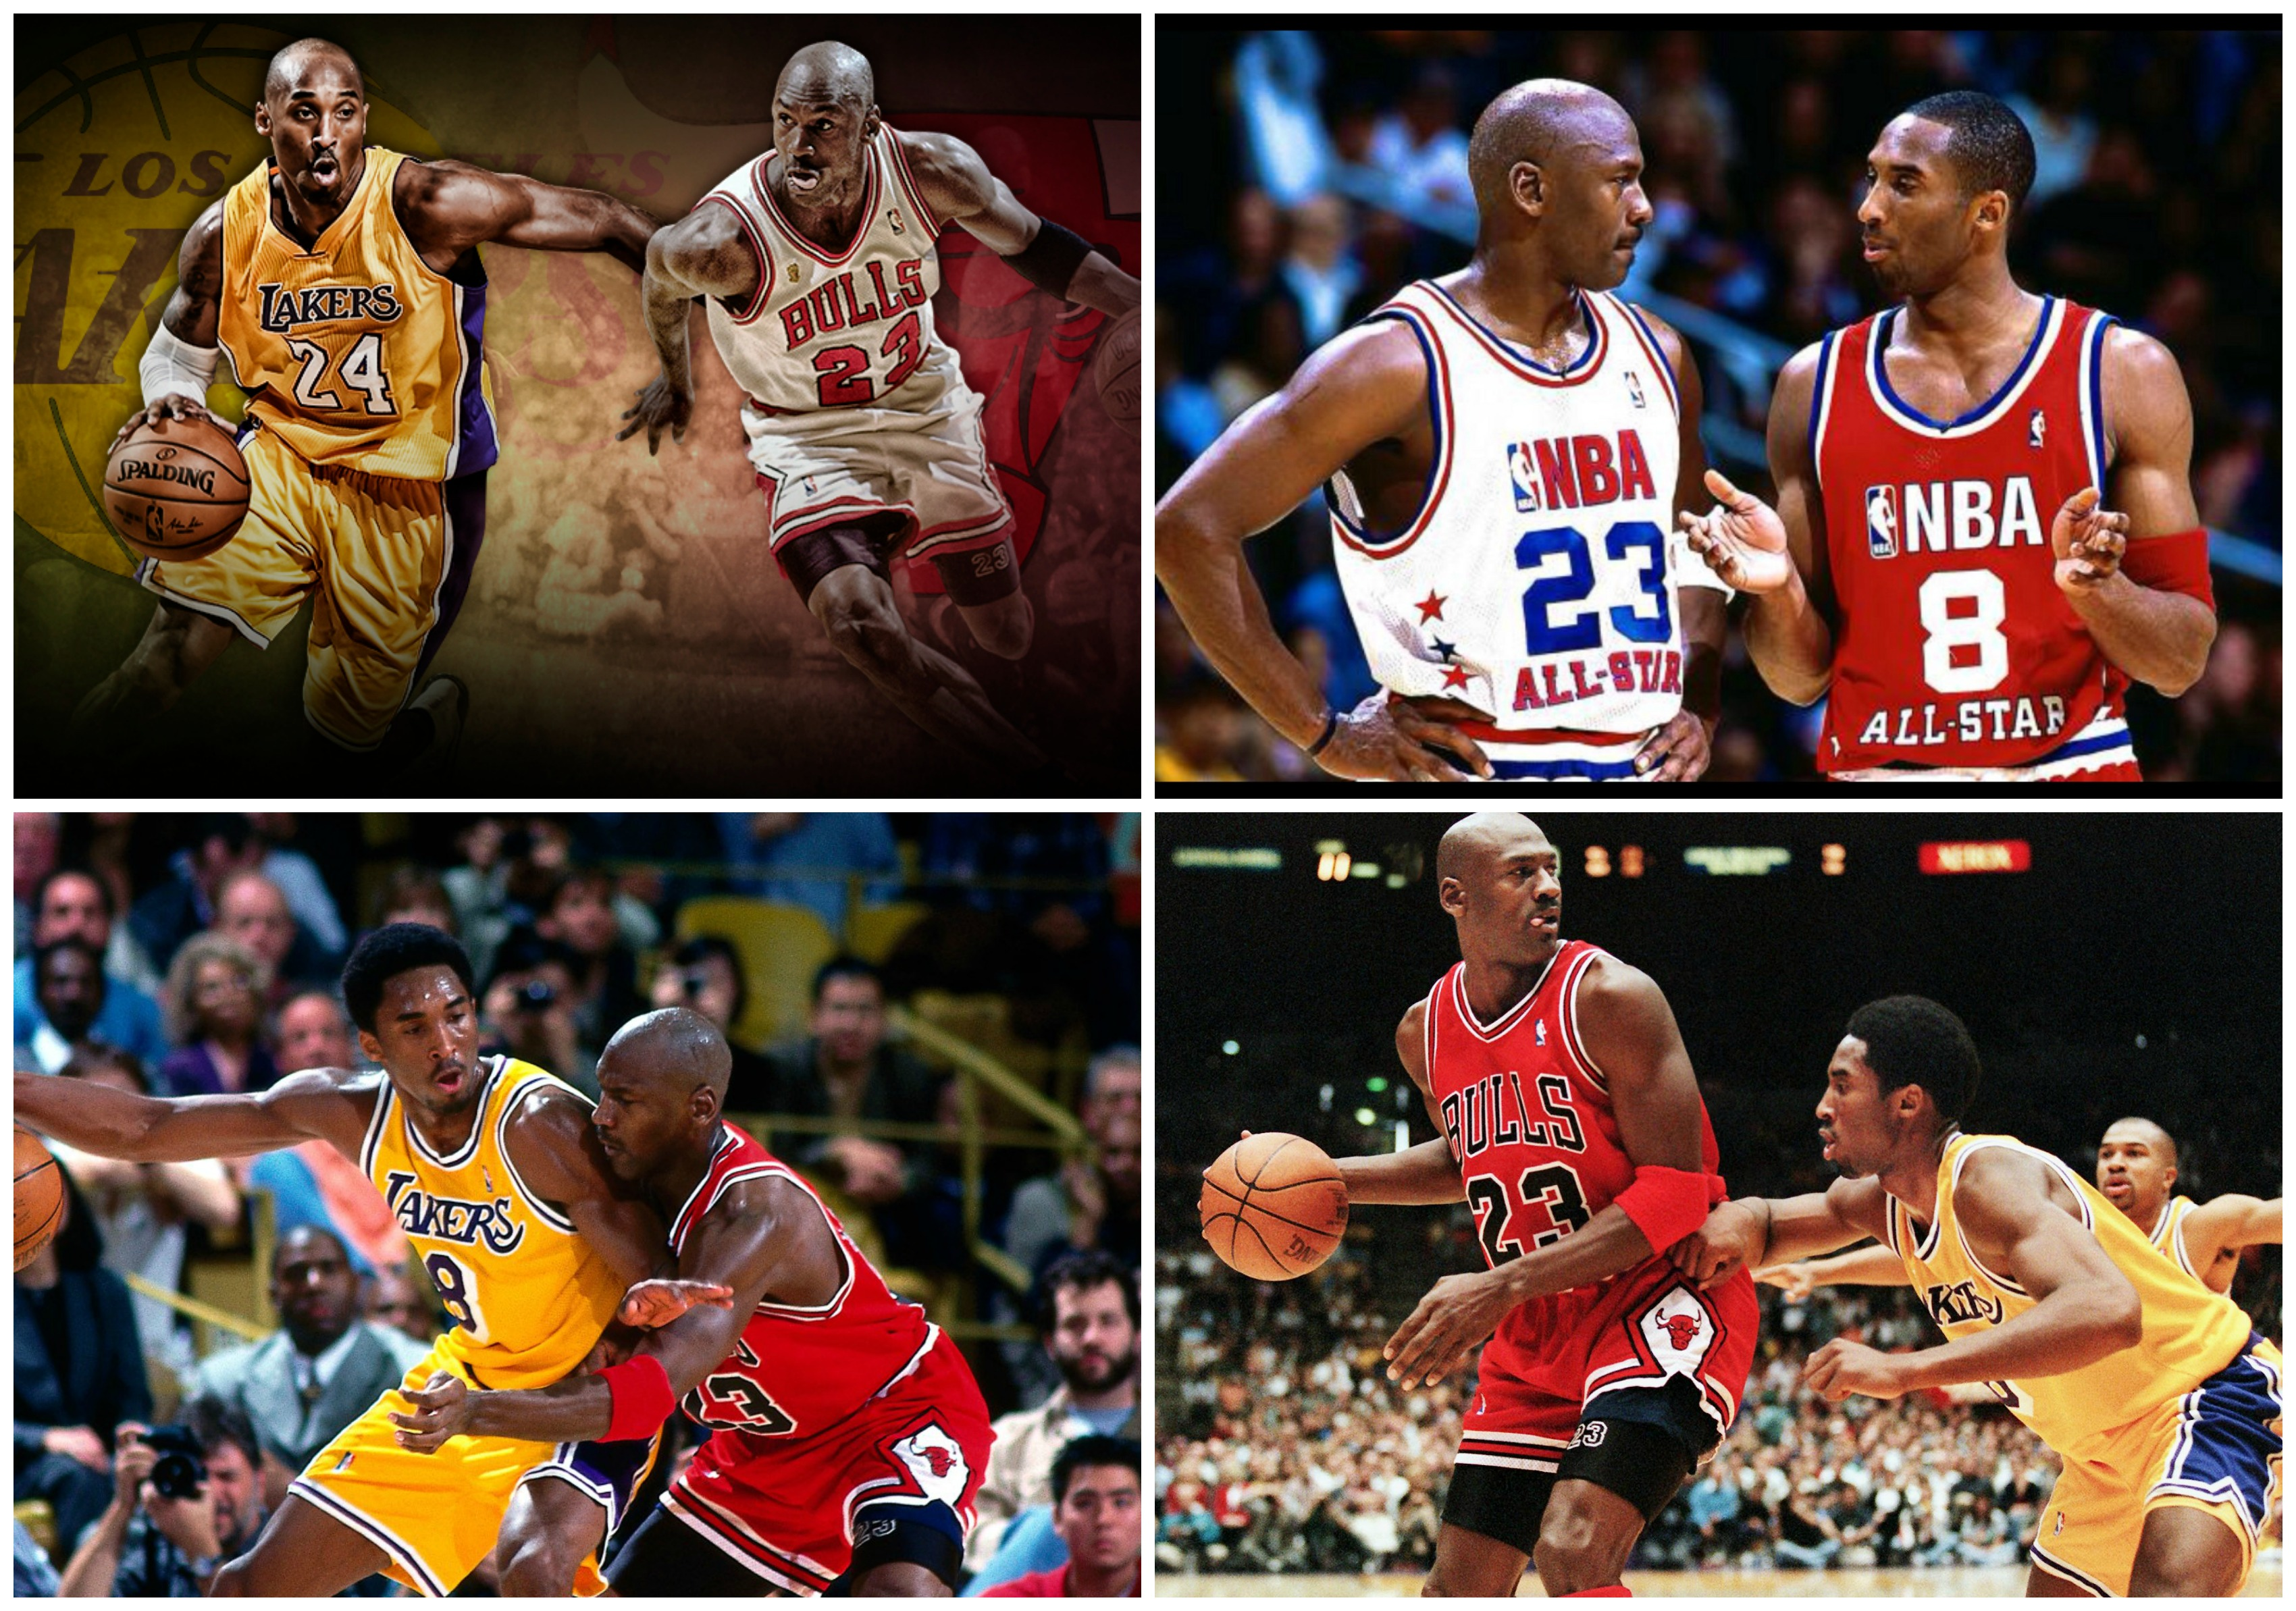 Michael Jordan Vs. Kobe Bryant Is A No-Brainer